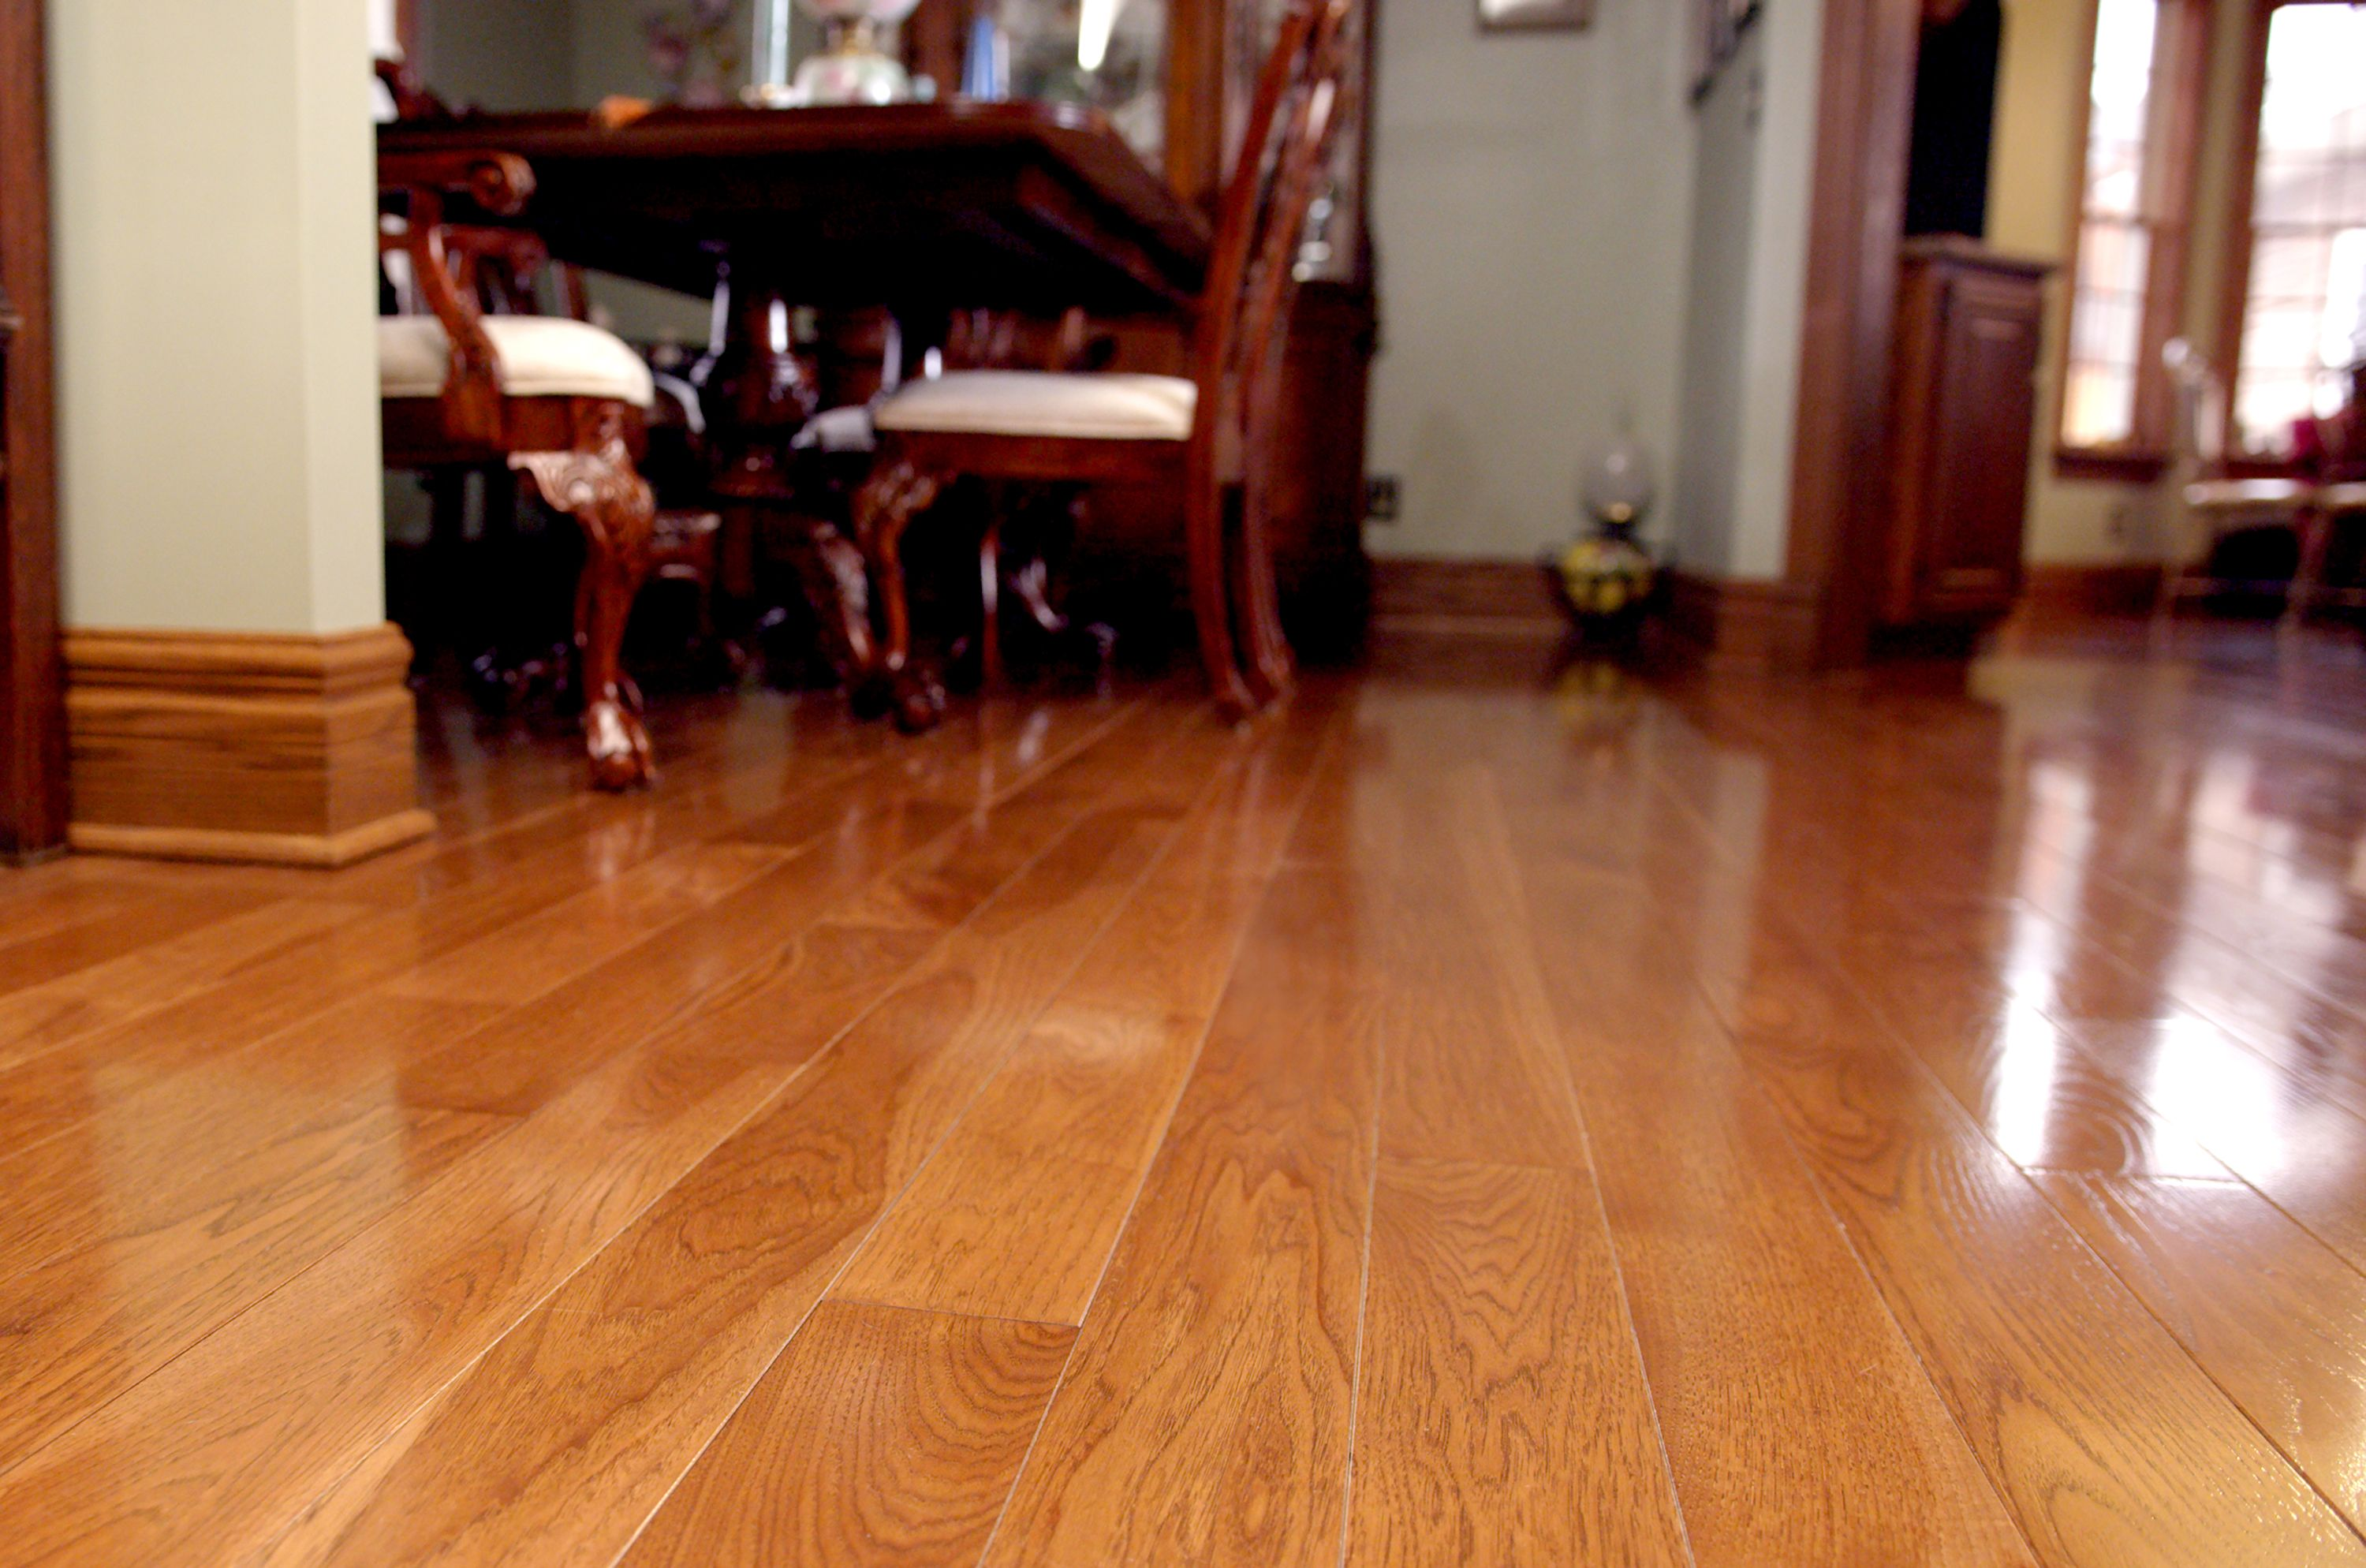 4 Hickory Micro V Groove End Matched Floor With Traditional Cherry Stain And Semi Gloss Finish Hardwood Floors Flooring Cork Flooring